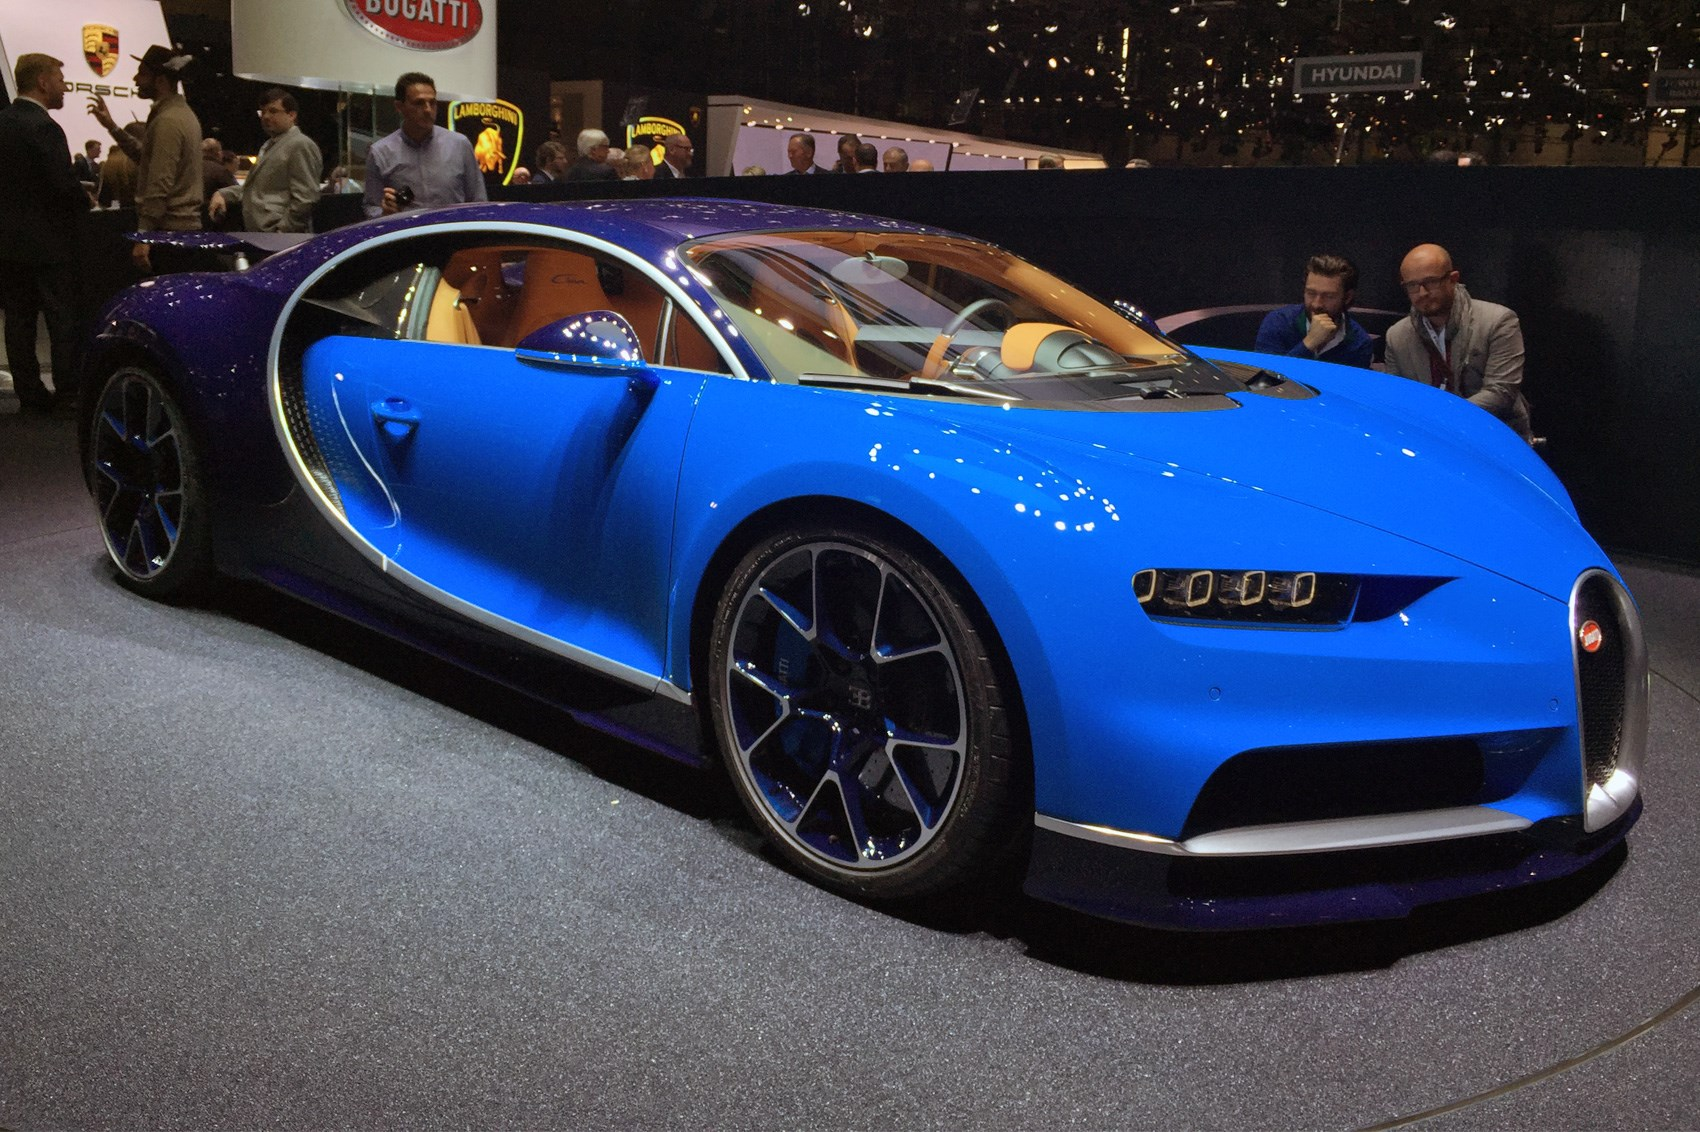 Ultrablogus  Gorgeous Bugatti Is Go New Chiron Name Confirmed Here At Geneva  By  With Entrancing Bugatti Chiron Revealed At Geneva  The World Has A New Fastest Production Car With Attractive Jeep Grand Cherokee Interior Parts Also Two Tone Interior In Addition Nissan Altima Interior Accessories And Frs Interior Lights As Well As Upholstery Car Interior Additionally Car Interior Design Ideas From Carmagazinecouk With Ultrablogus  Entrancing Bugatti Is Go New Chiron Name Confirmed Here At Geneva  By  With Attractive Bugatti Chiron Revealed At Geneva  The World Has A New Fastest Production Car And Gorgeous Jeep Grand Cherokee Interior Parts Also Two Tone Interior In Addition Nissan Altima Interior Accessories From Carmagazinecouk